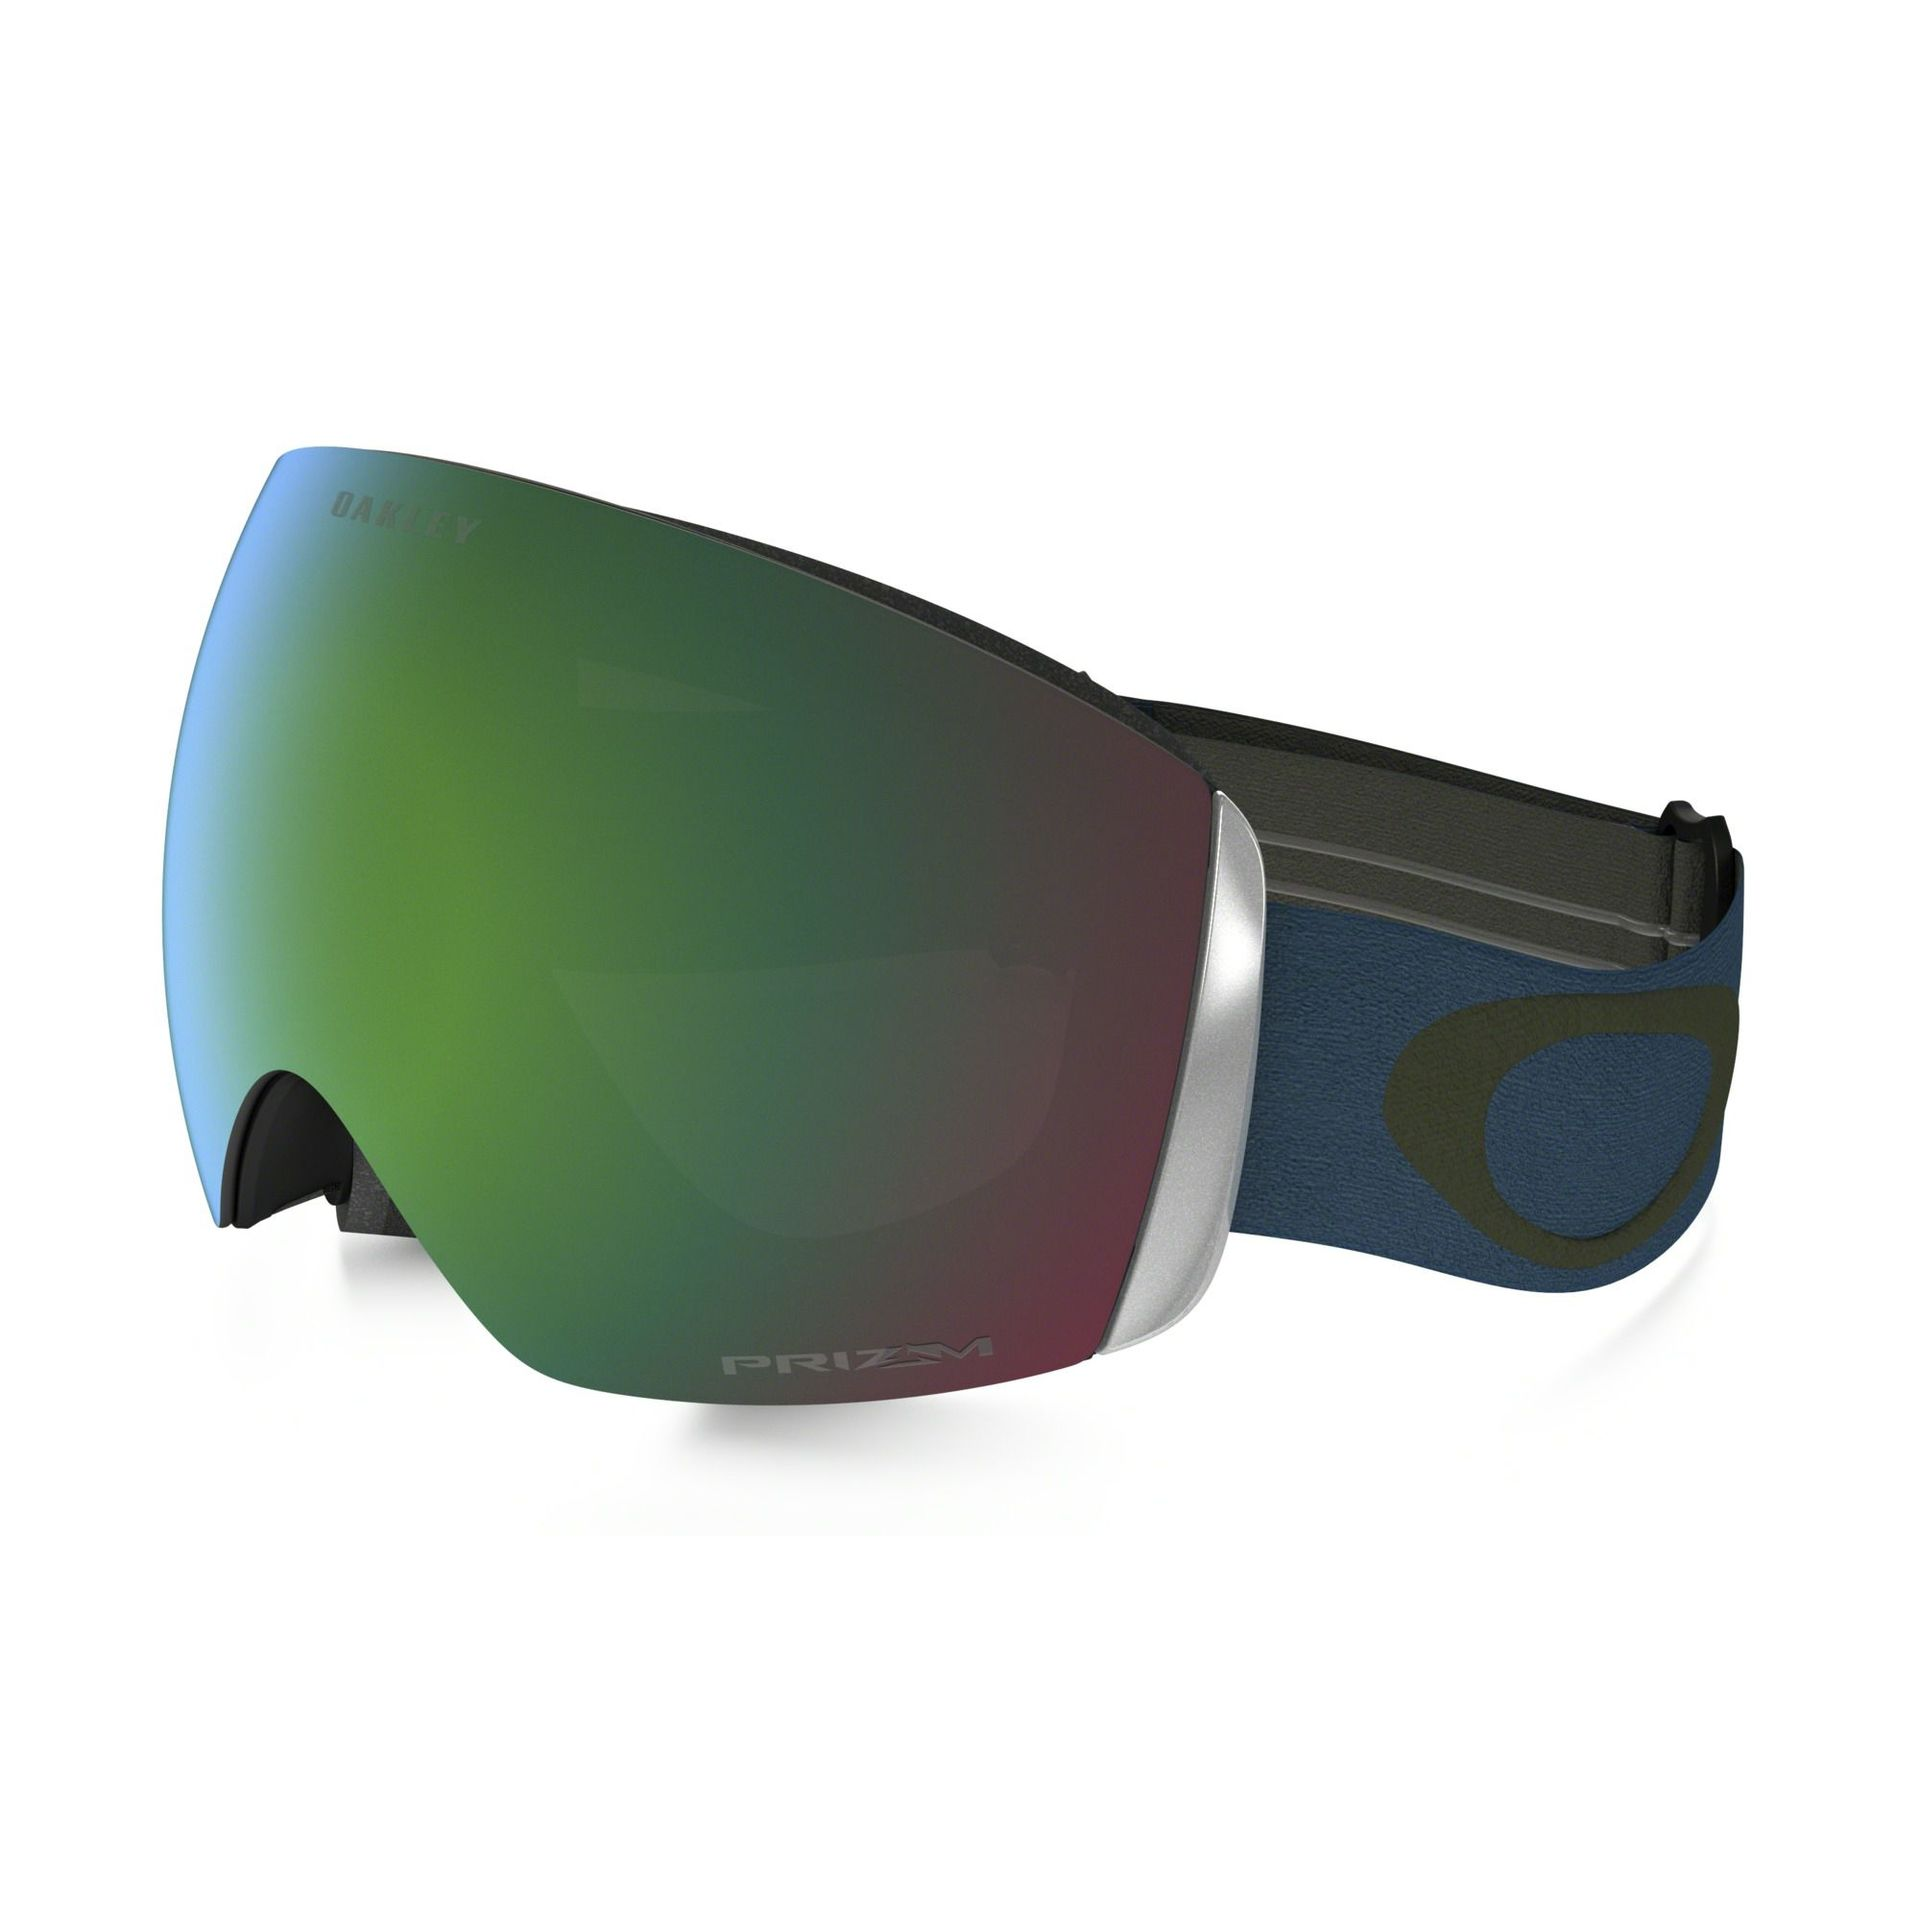 GOGLE OAKLEY FLIGHT DECK LEGION BLUE GREEN PRIZM JADE IRIDIUM